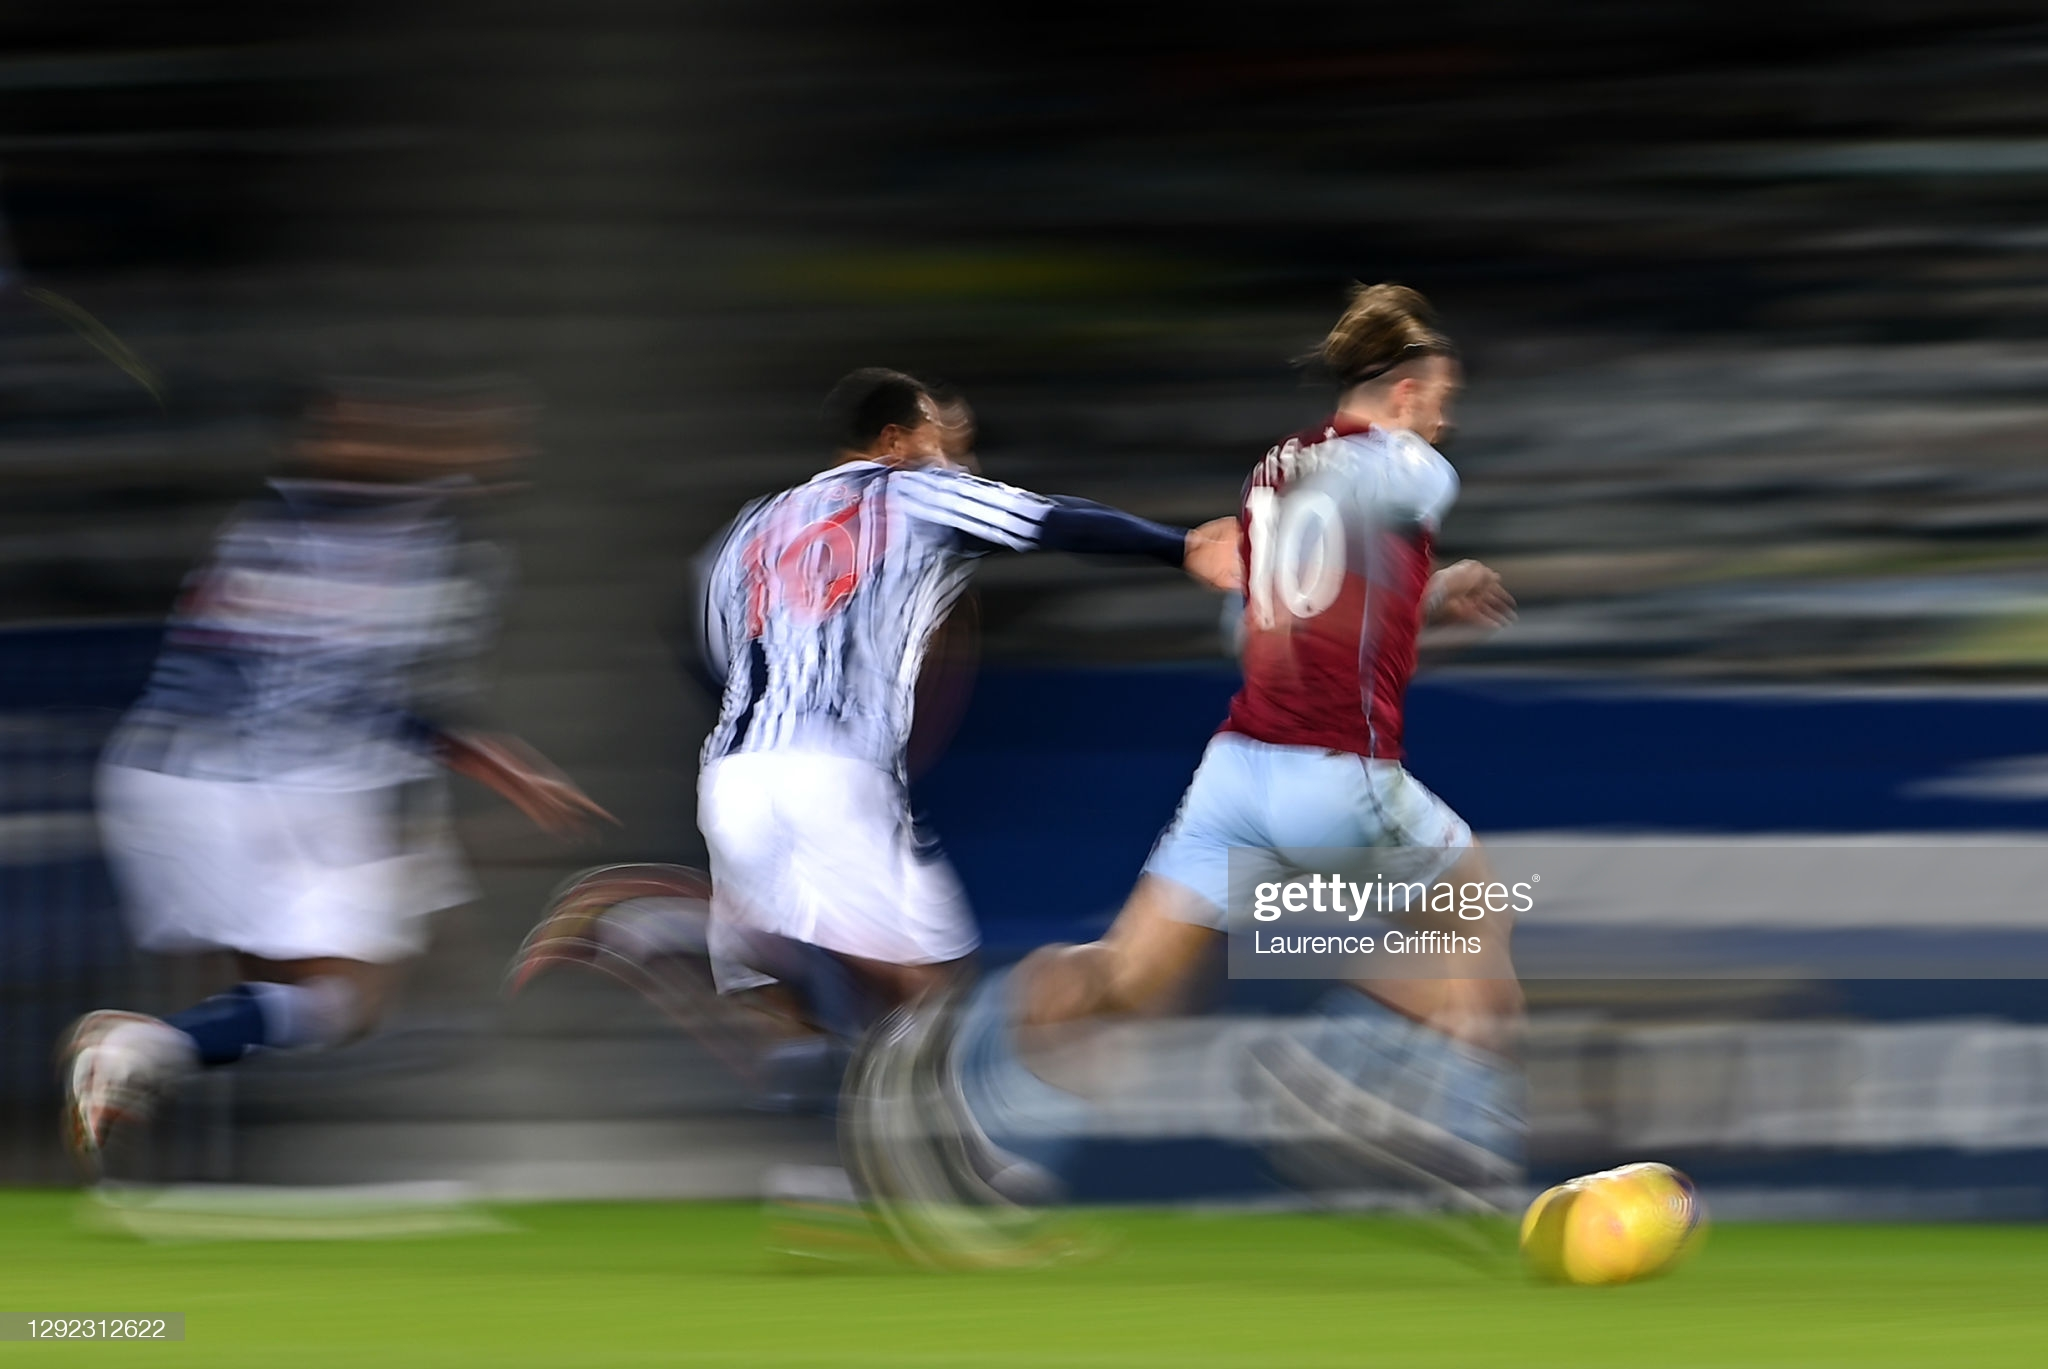 gettyimages-1292312622-2048x2048